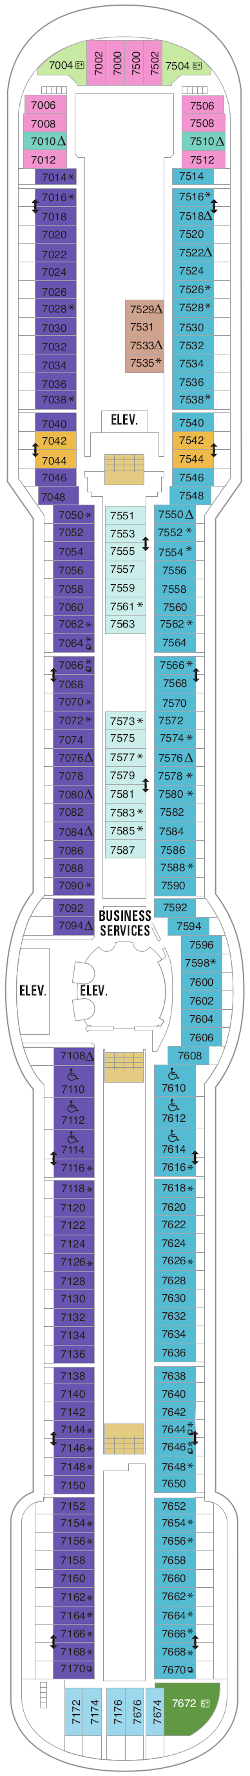 Radiance Of The Seas Deck Seven Deck Plan